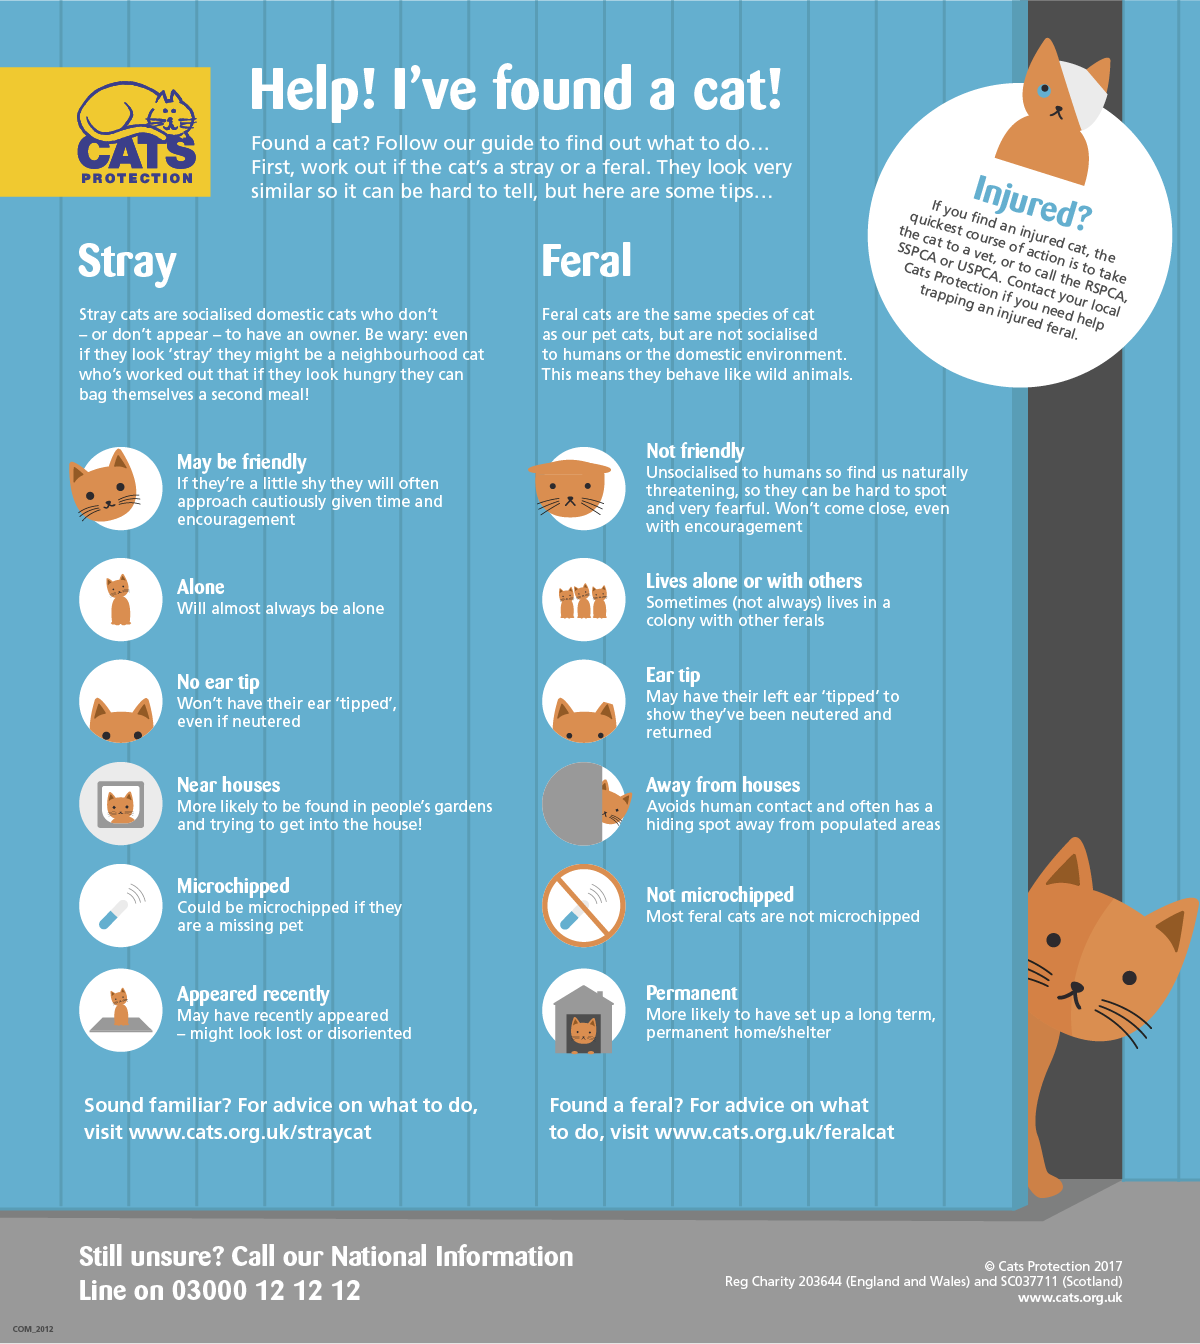 Have you found a stray or a feral cat?